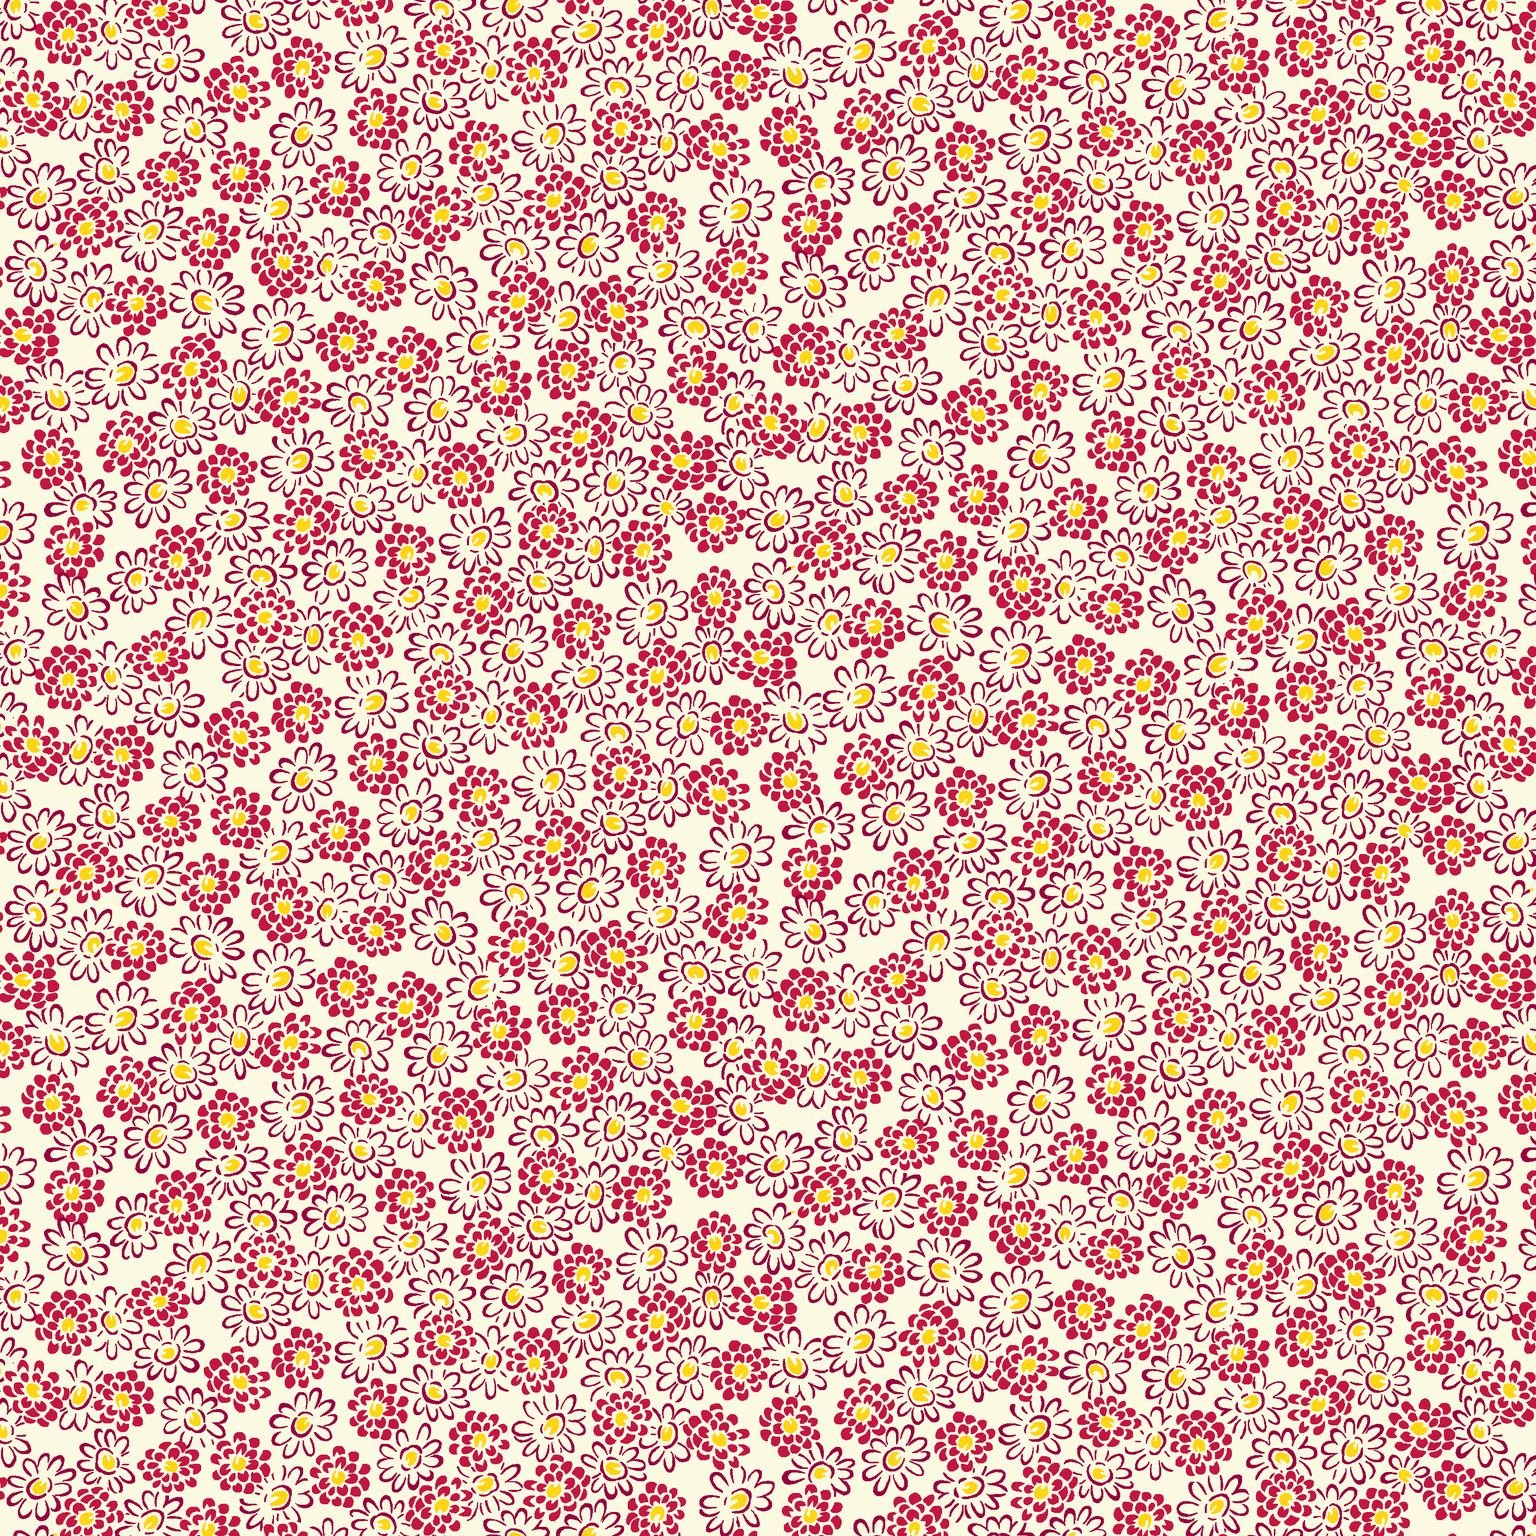 HG-Nana Mae V 9691-84 Cream/Red - Spaced Small Floral